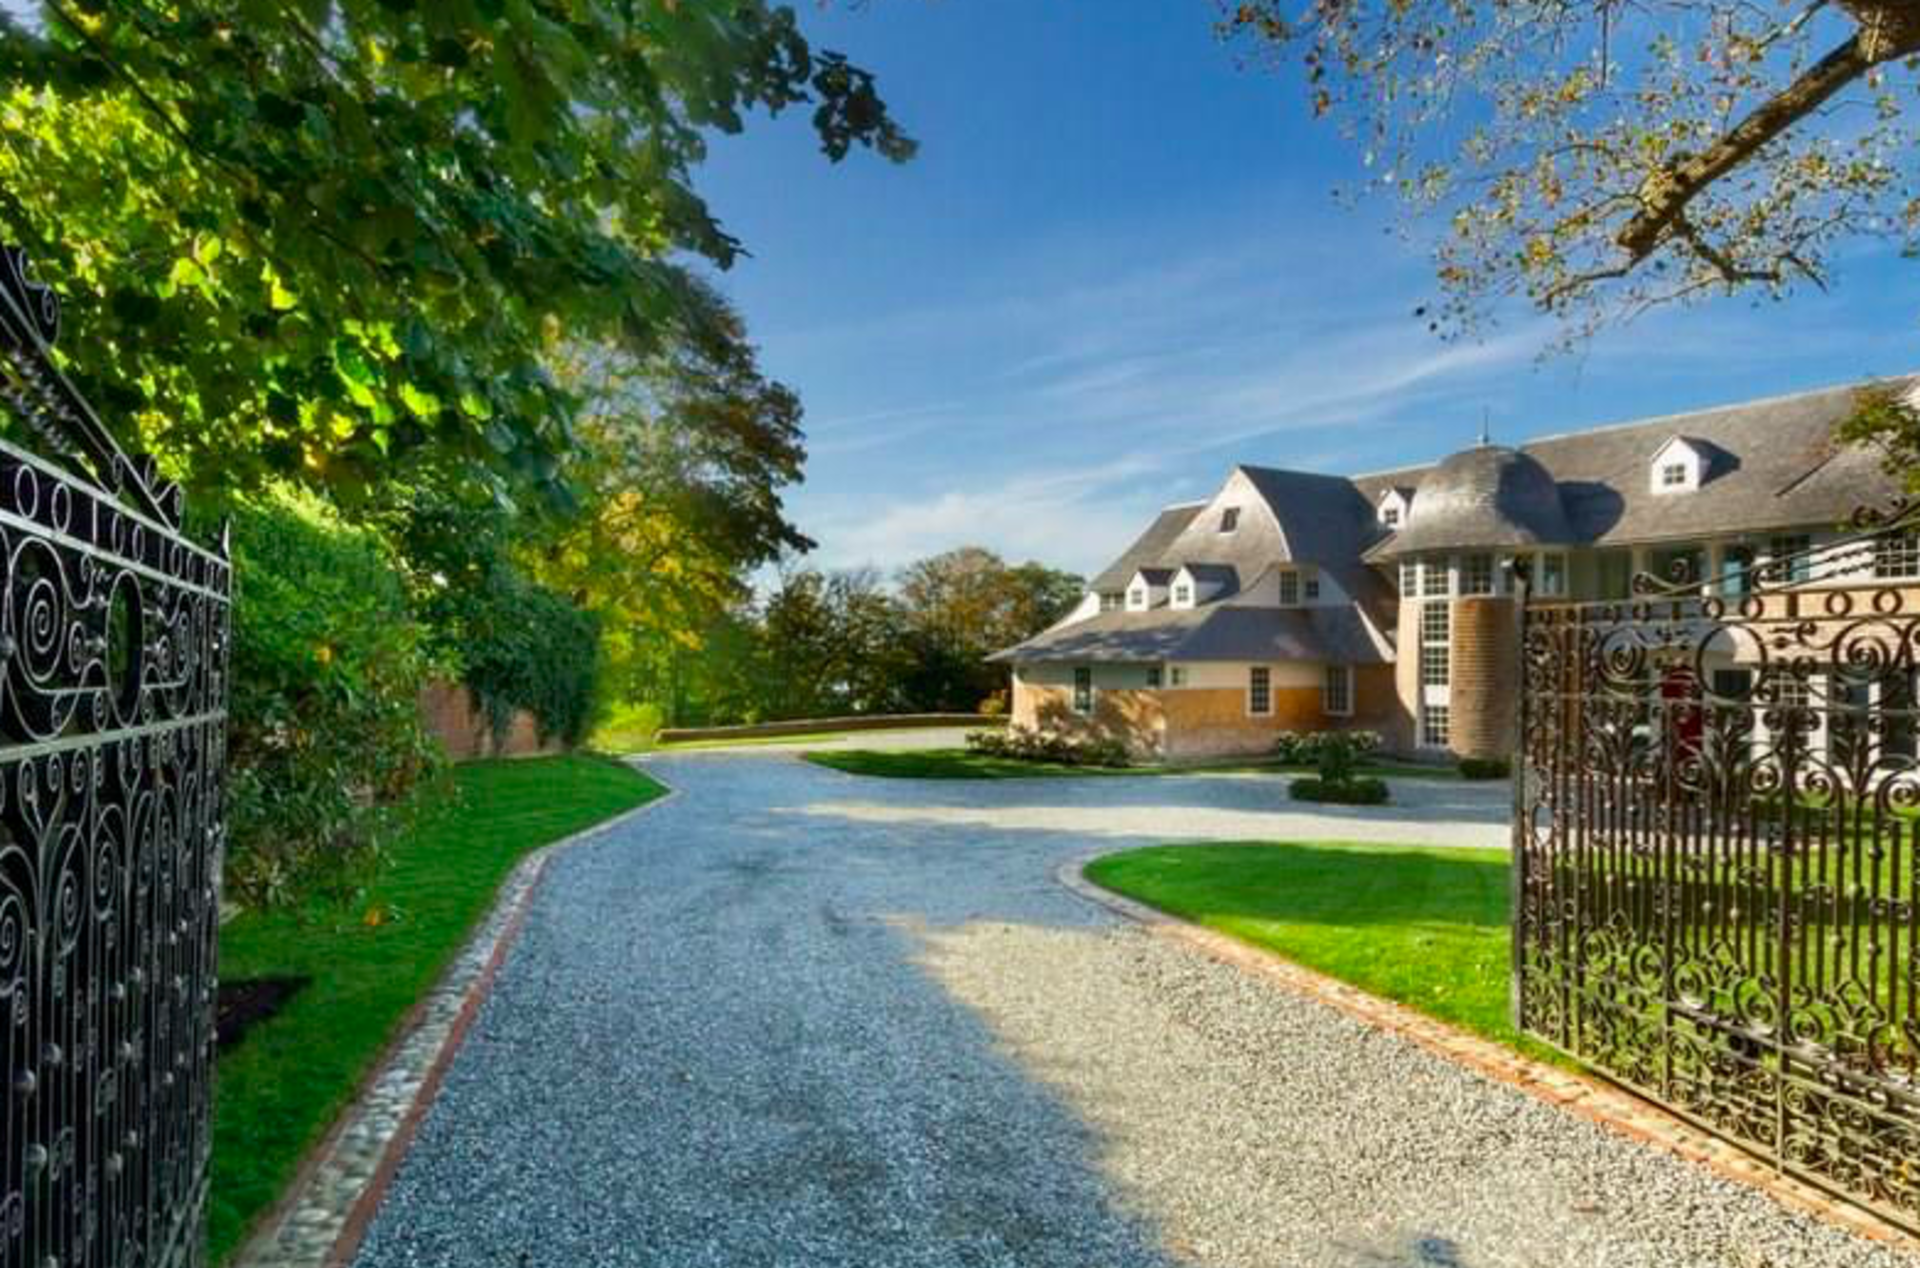 House Crush of the Week: 21 Chastellux in Newport